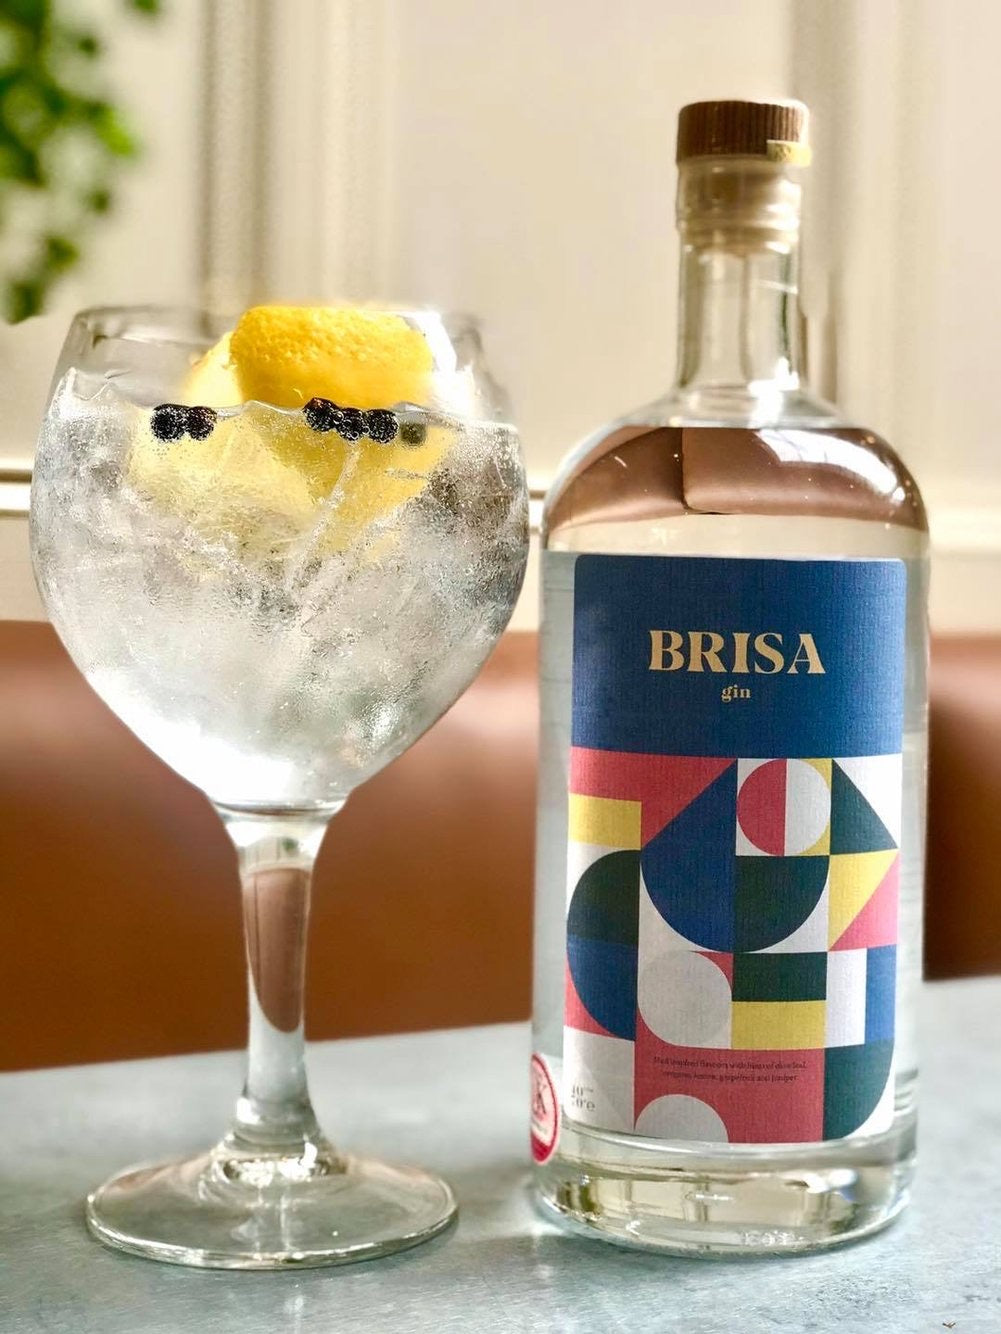 Gin - Brisa Gin - Med inspired flavours with hints of olive leaf, oregano, lemon, grapefruit & juniper